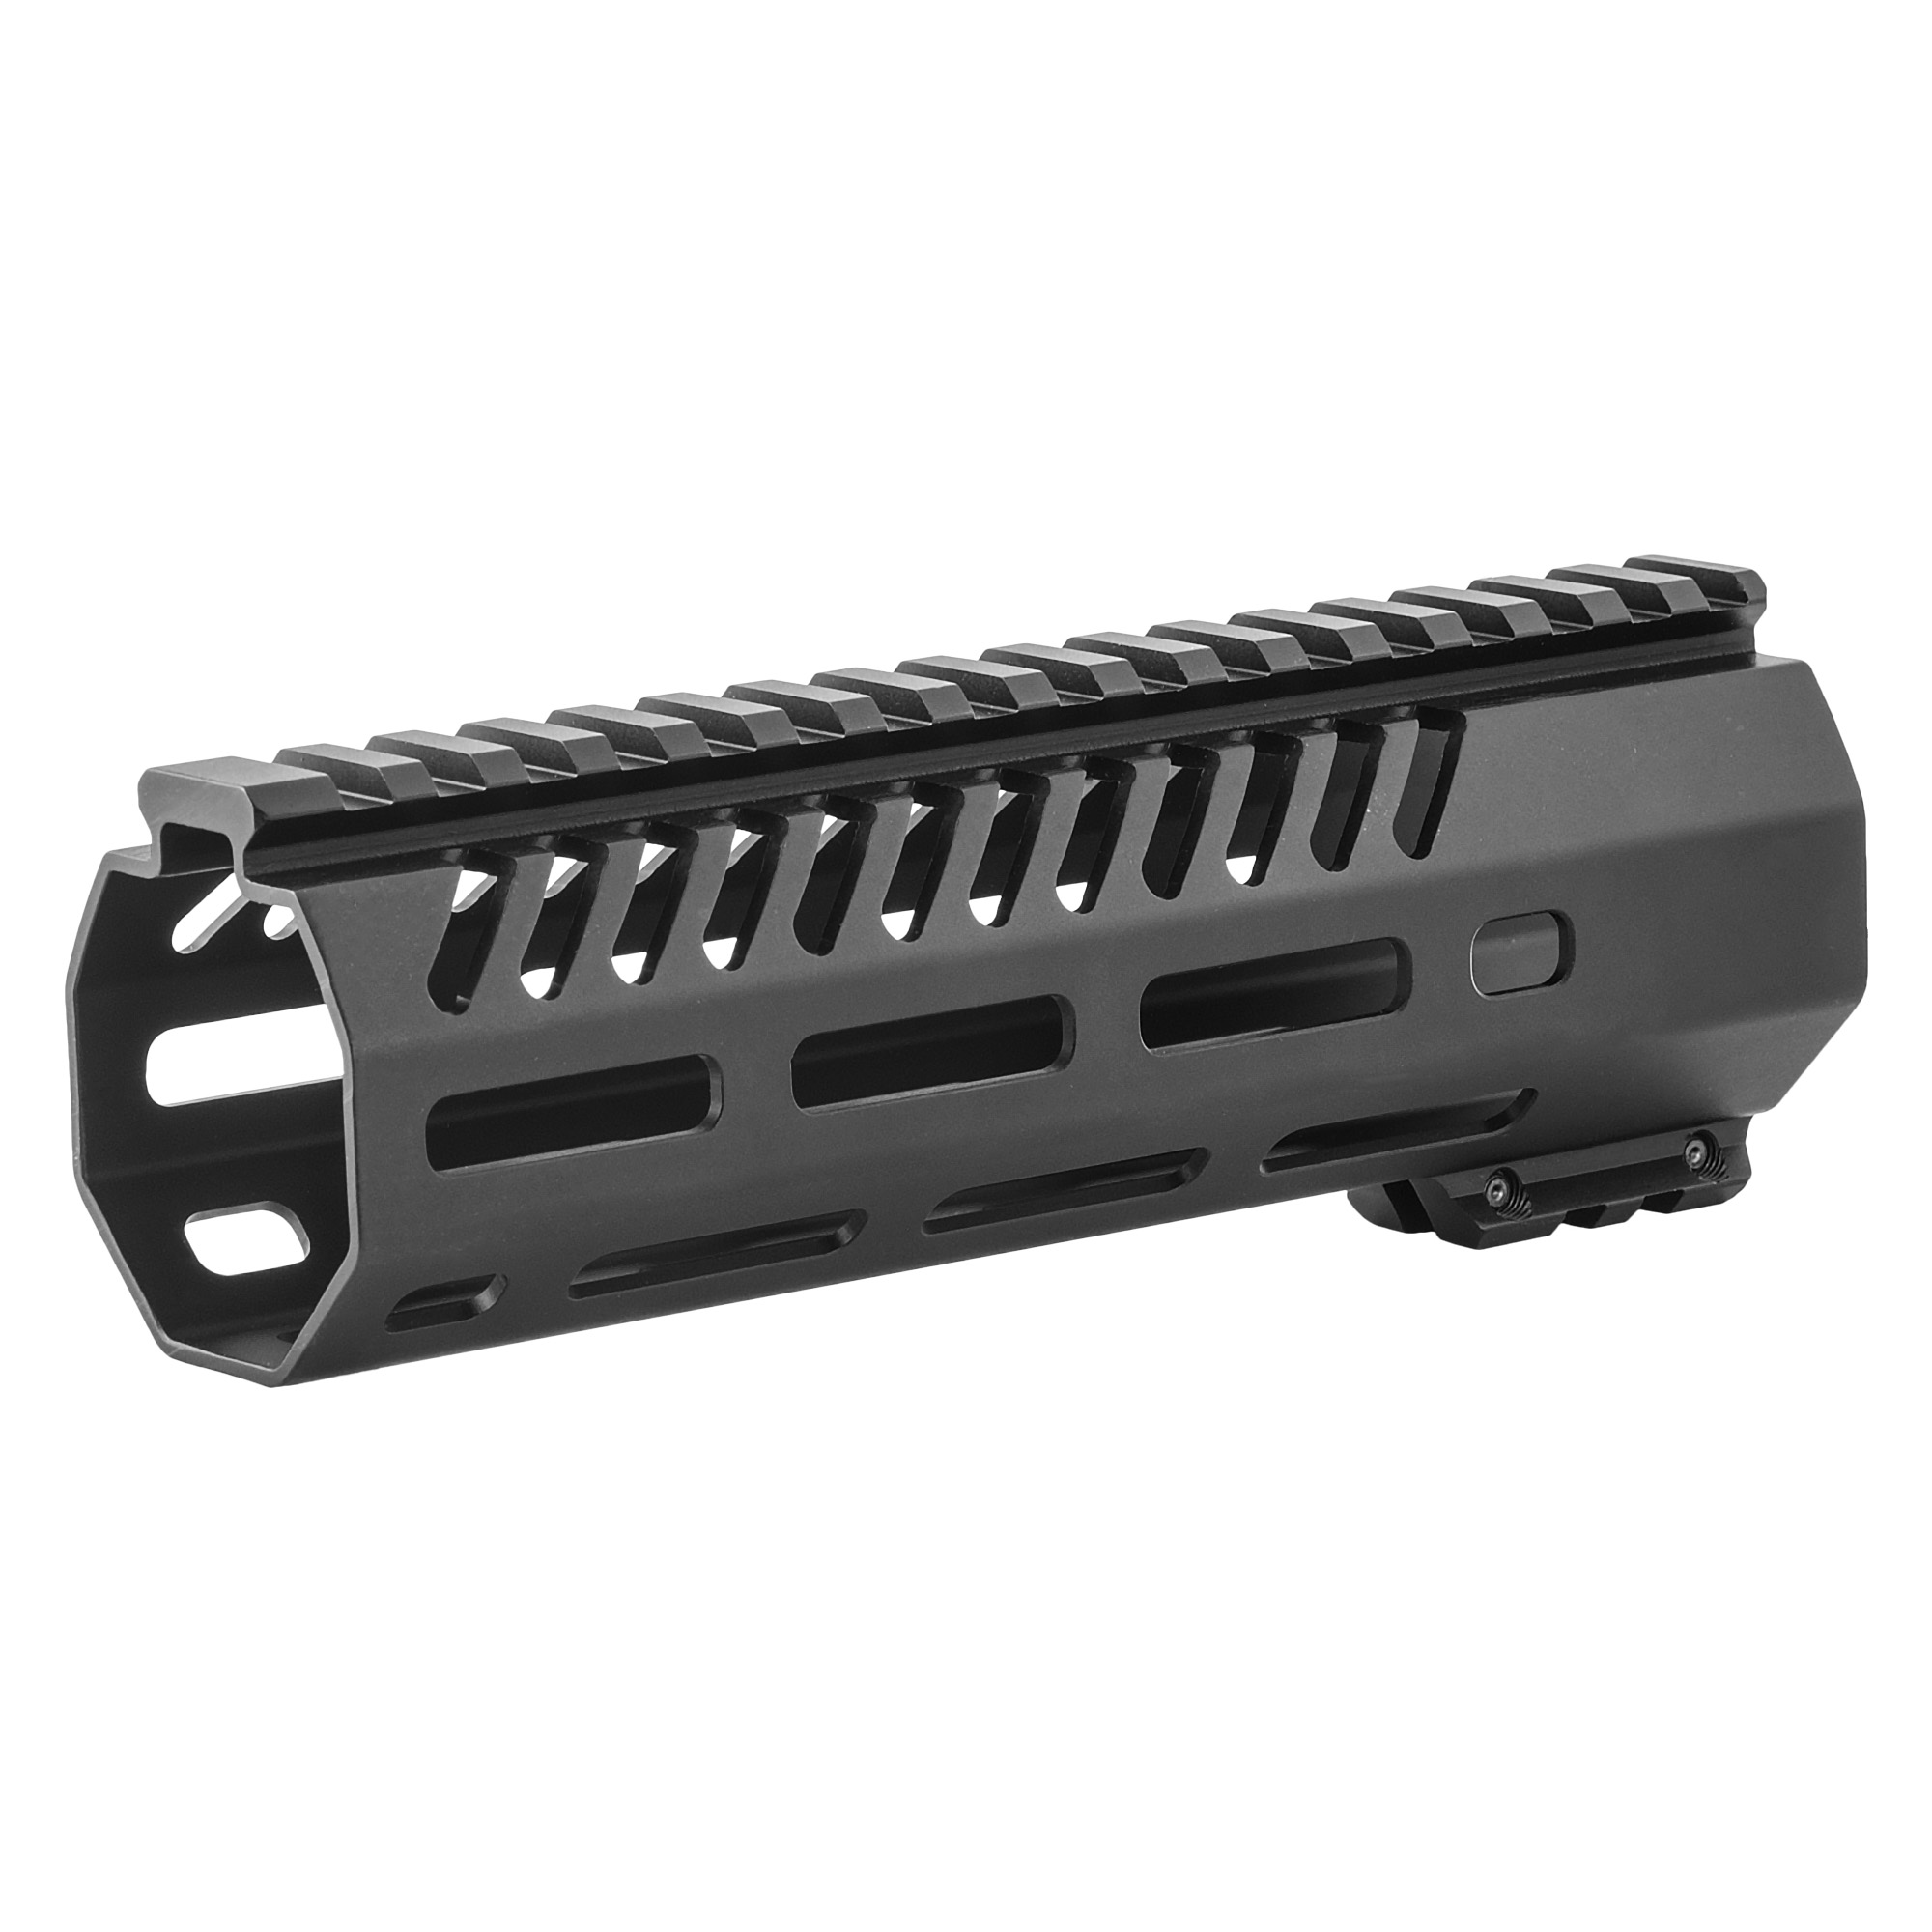 """The Tekko metal AR-15 7"""" free float M-LOK rail system replaces the plastic factory handguard. M-LOK(TM) attachment system provides secure mounting for MIL-STD 1913 Picatinny Rails and accessories such as vertical grips"""" lights"""" lasers"""" bipods and other rail mounted kit. Will accommodate most suppressor installations. Patent pending mounting"""" indexing and lock up system. Larger range of modularity with offset mounting positions as well as the traditional 12"""" 3"""" 6 and 9 o'clock positions. Monolithic style top rail eliminates the gap between the receiver and rail. Minor assembly required"""" utilizes standard barrel nut and will accommodate a standard front sight post"""" low profile gas block or Picatinny Rail gas block. The M-LOK(TM) system allows for universal modularity between numerous manufacturers of accessories"""" and accessory rails."""